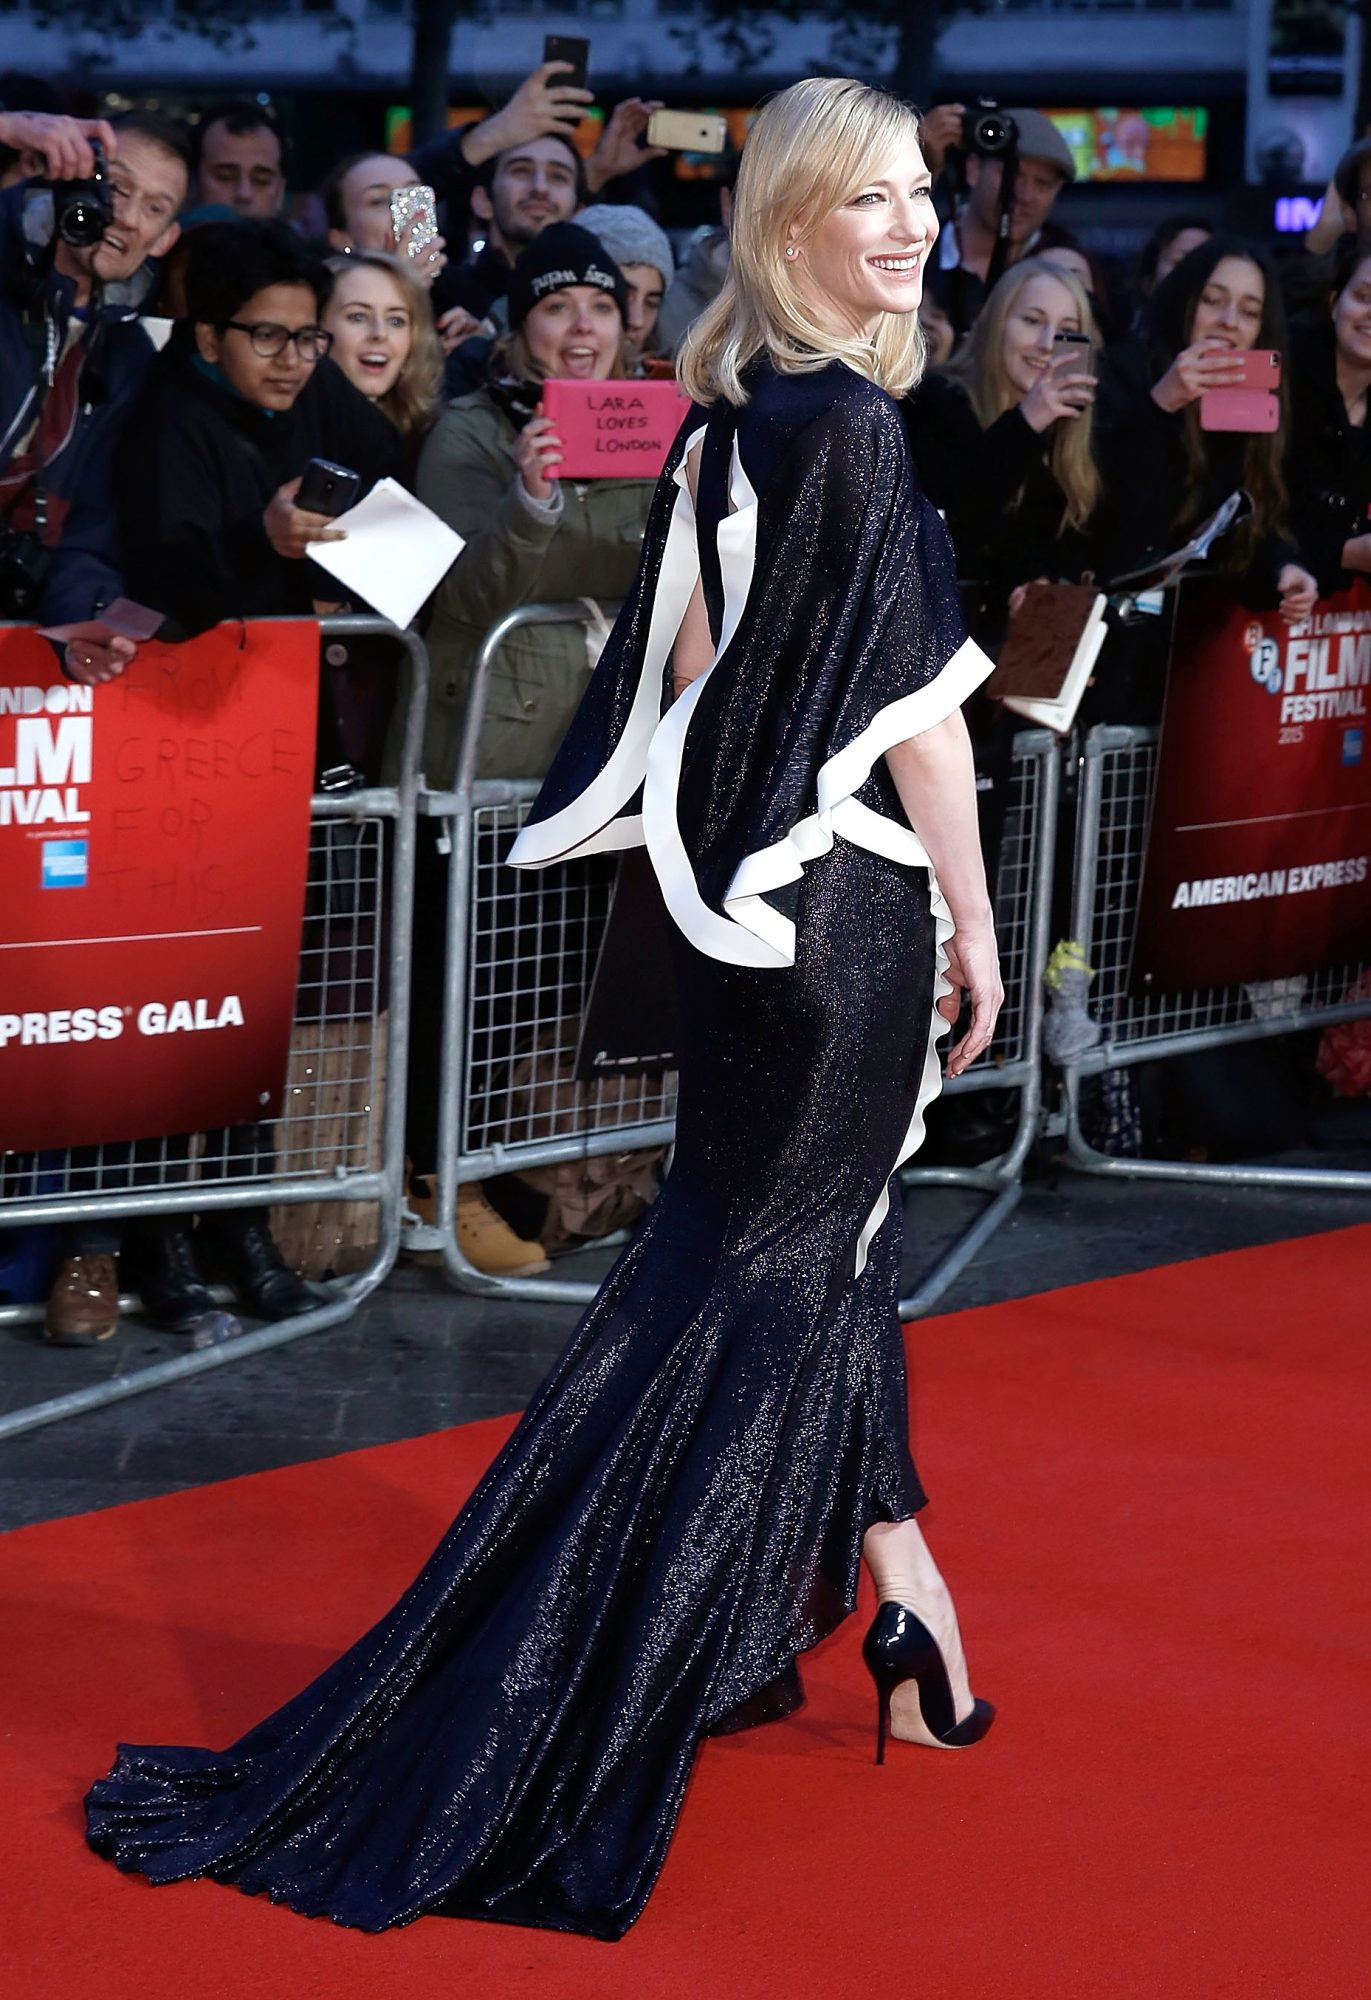 """Cate Blanchett attends the """"Carol"""" America Express Gala during the BFI London Film Festival, at the Odeon Leicester Square on October 14, 2015 in London, England."""